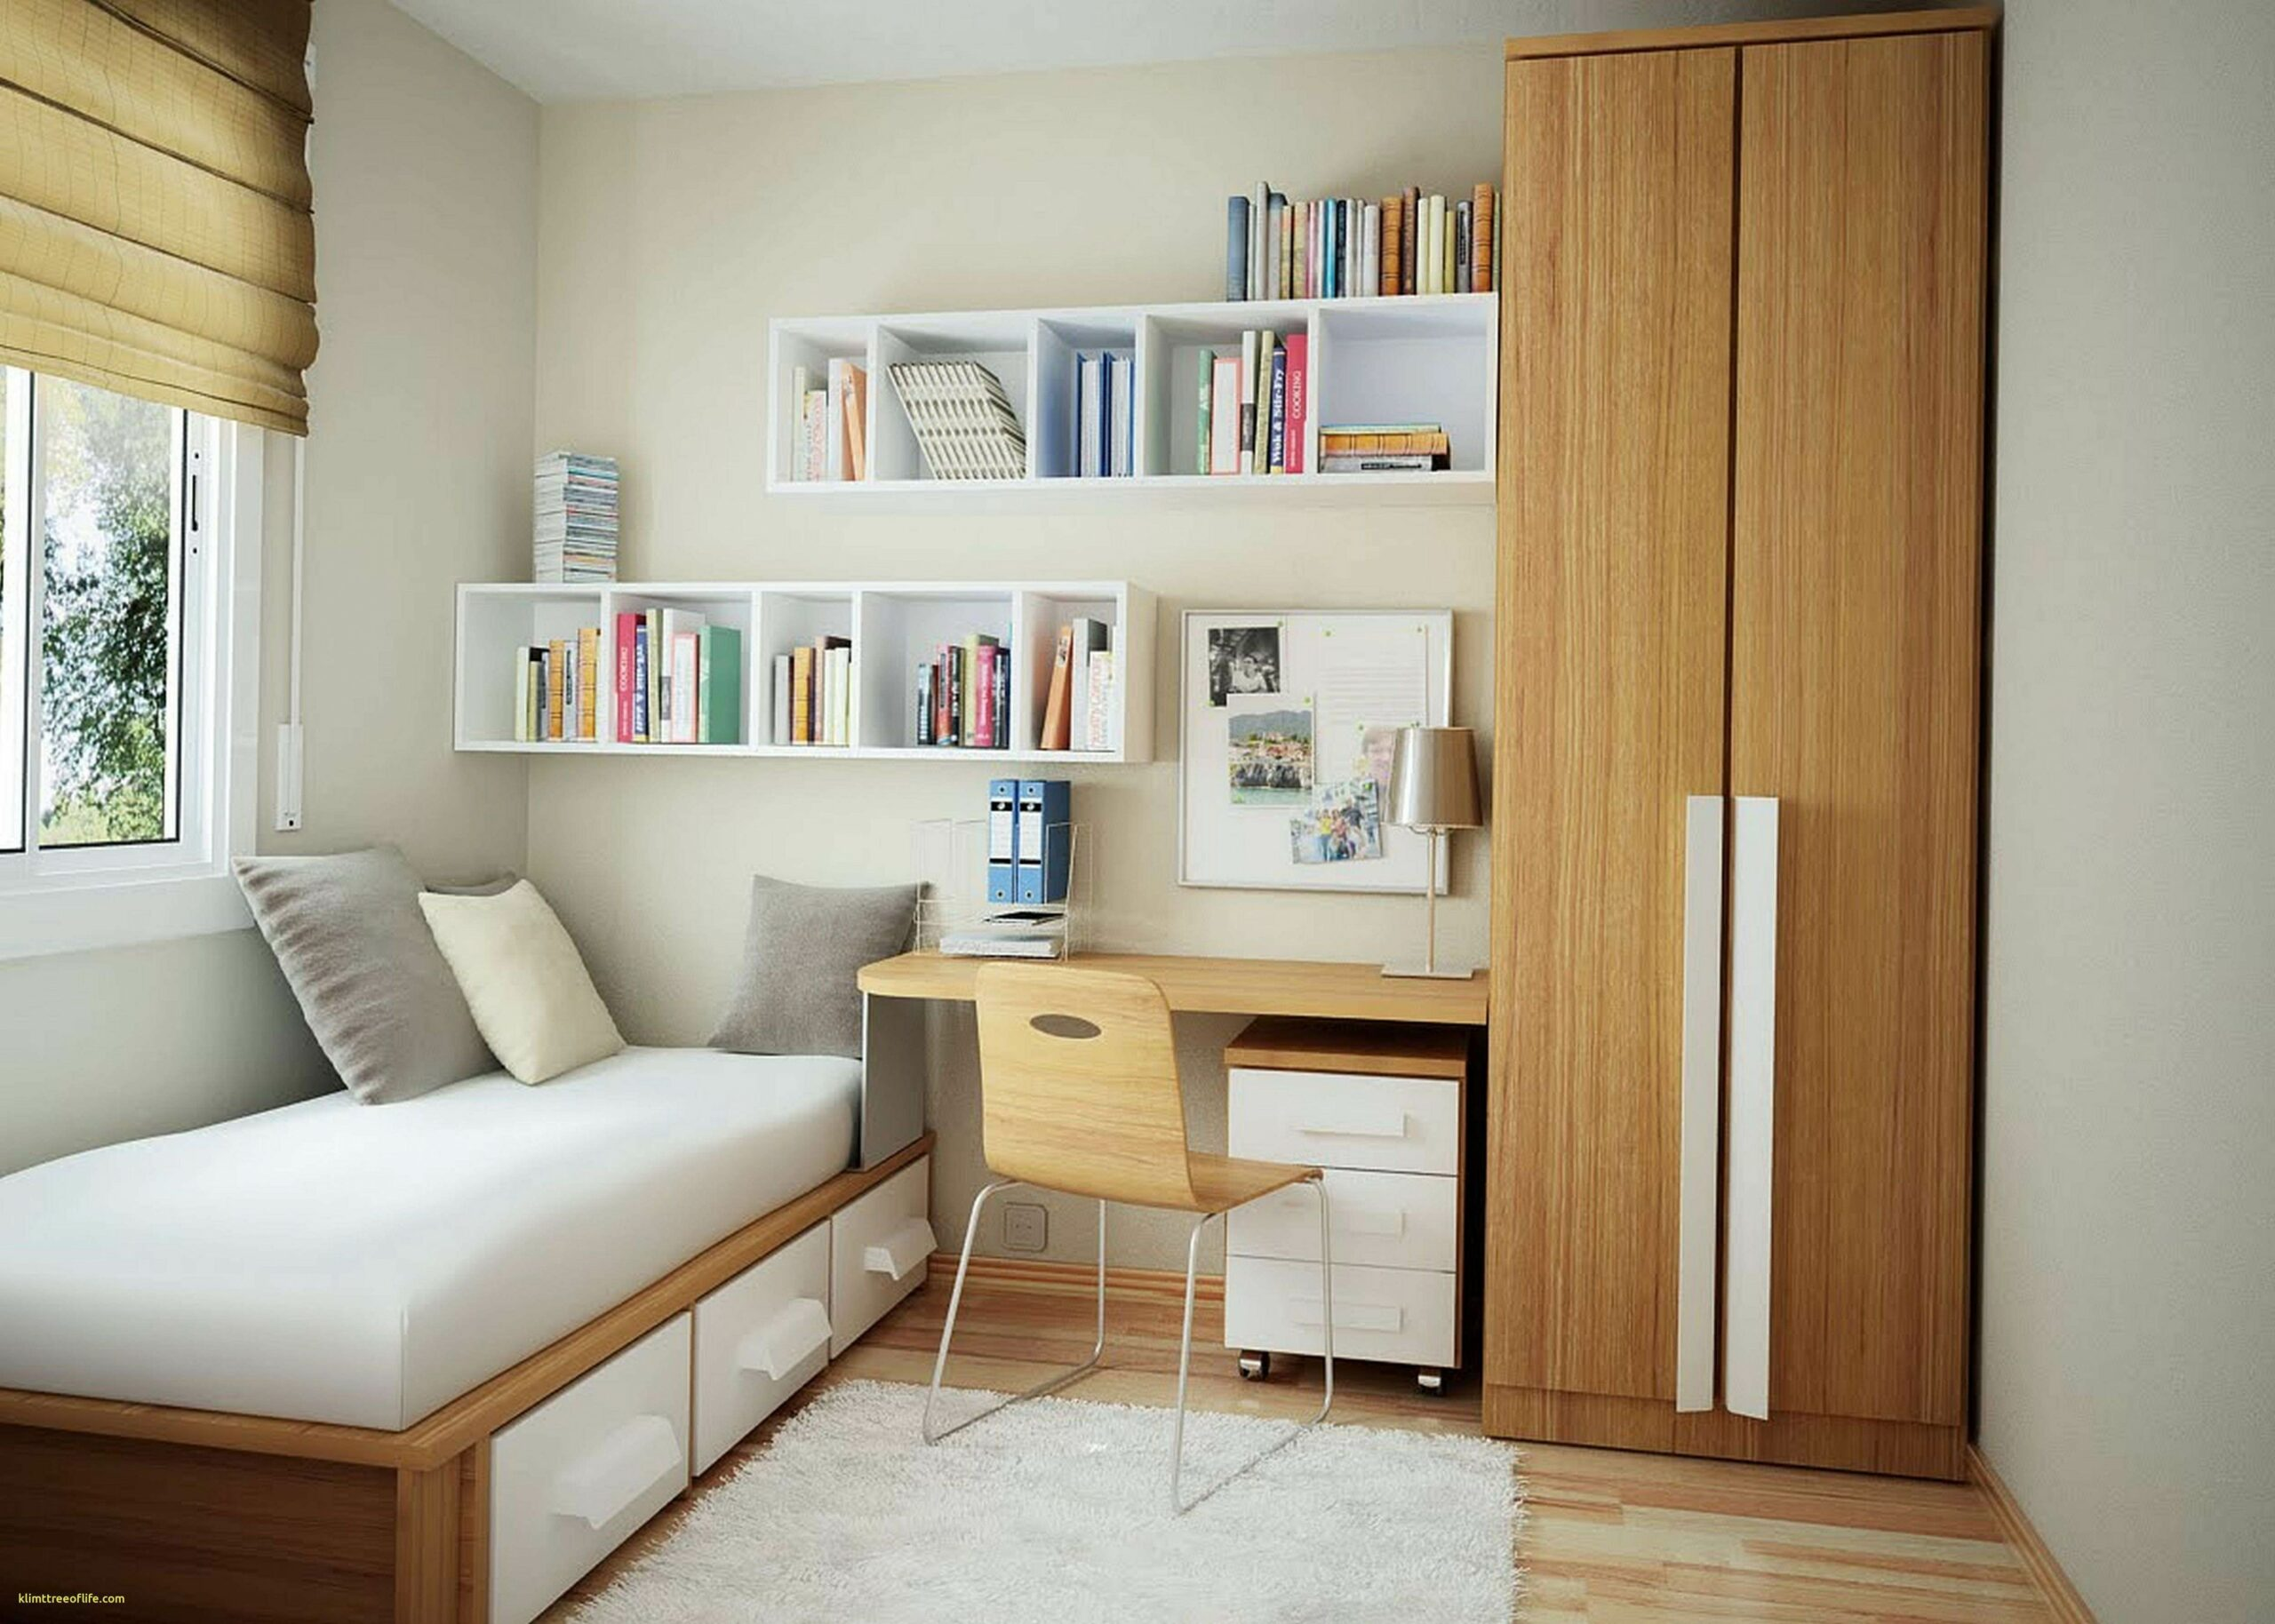 12 Beautiful Minimalist Bedroom Design Ideas For Small Spaces ..